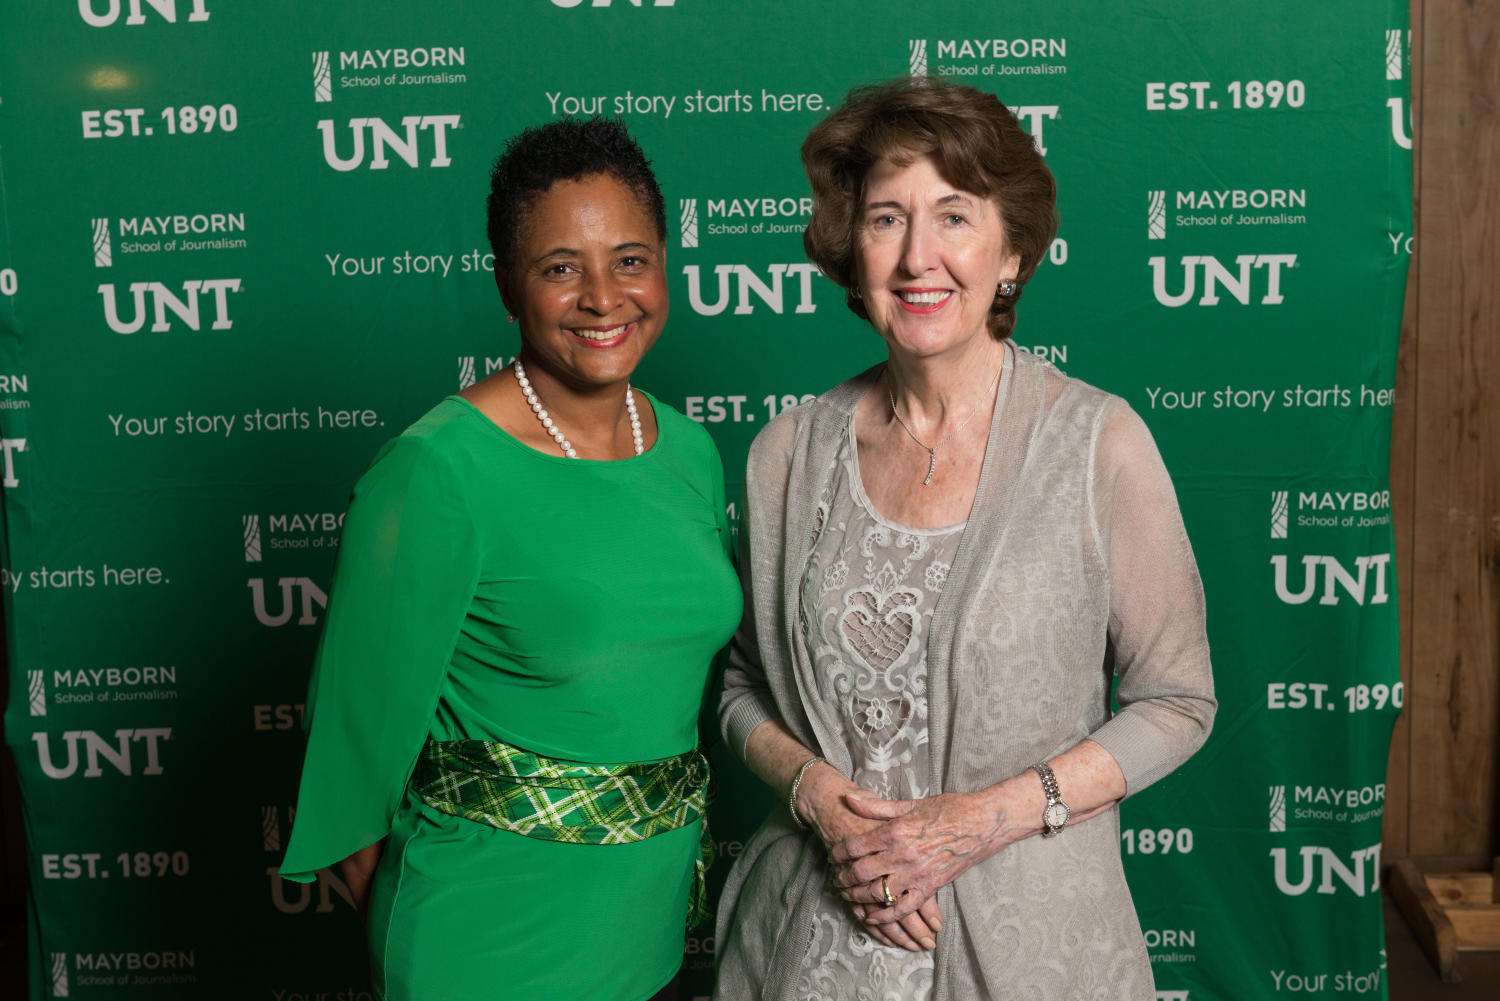 """[Dorothy Bland and Sue Mayborn in front of backdrop], Photograph of Dorothy Bland, the dean of the Mayborn School of Journalism, and Sue Mayborn, the president of the Frank and Sue Mayborn Foundation, standing together in front of a UNT and Mayborn labeled backdrop. The phrase """"Your story starts here"""" is on it too. Both are attending the Mayborn Literary Nonfiction Conference at the Hilton DFW Lakes Executive Conference Center in Grapevine, TX.,"""